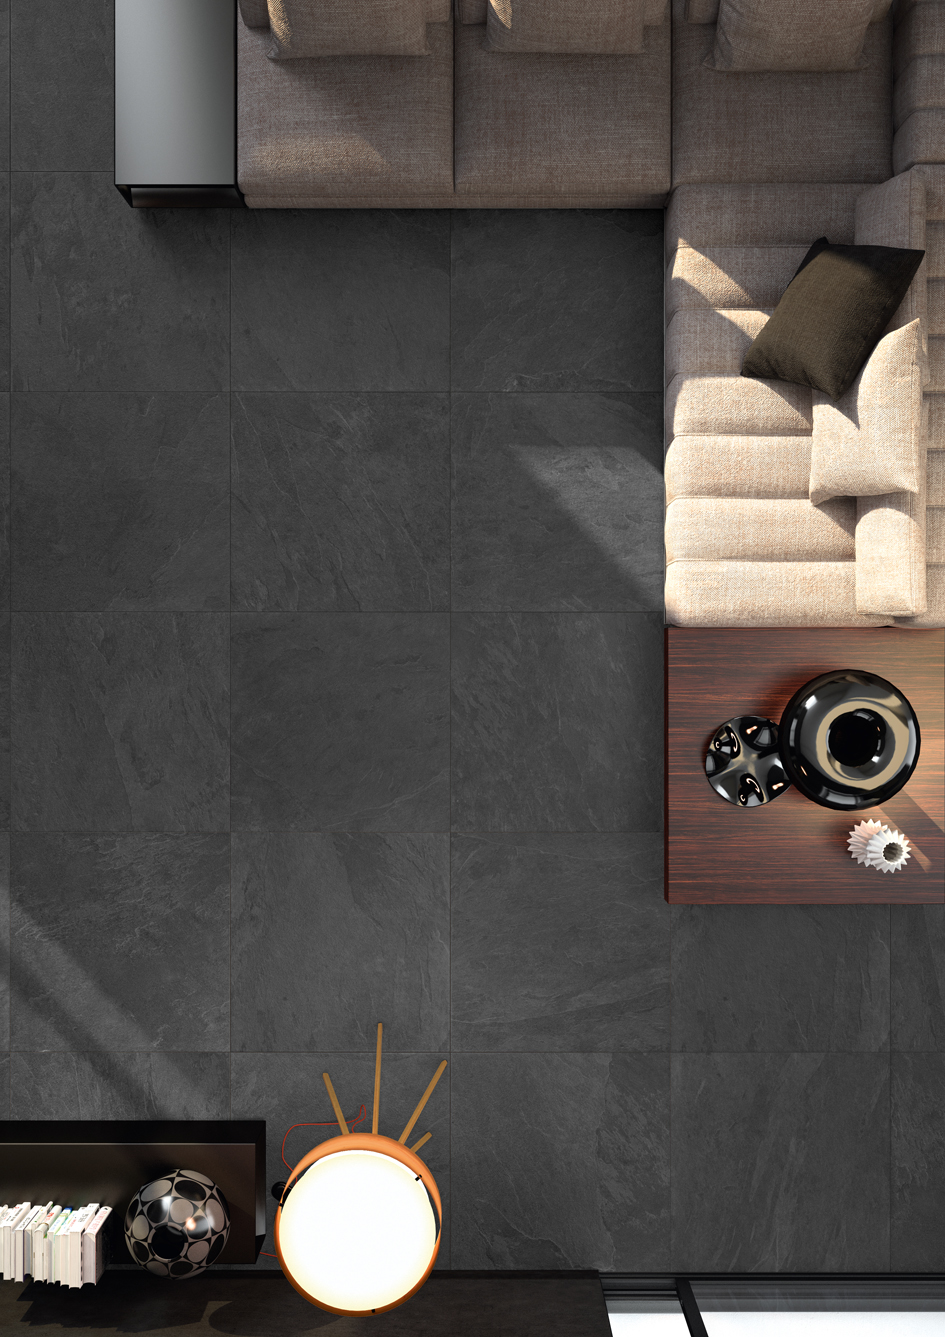 Slate porcelain tiles the beauty of slate the durability of for indoor and outdoor use slate porcelain tiles are available in two thicknesses and dimensions the 1cm thick tiles are ideal for interiors dailygadgetfo Images